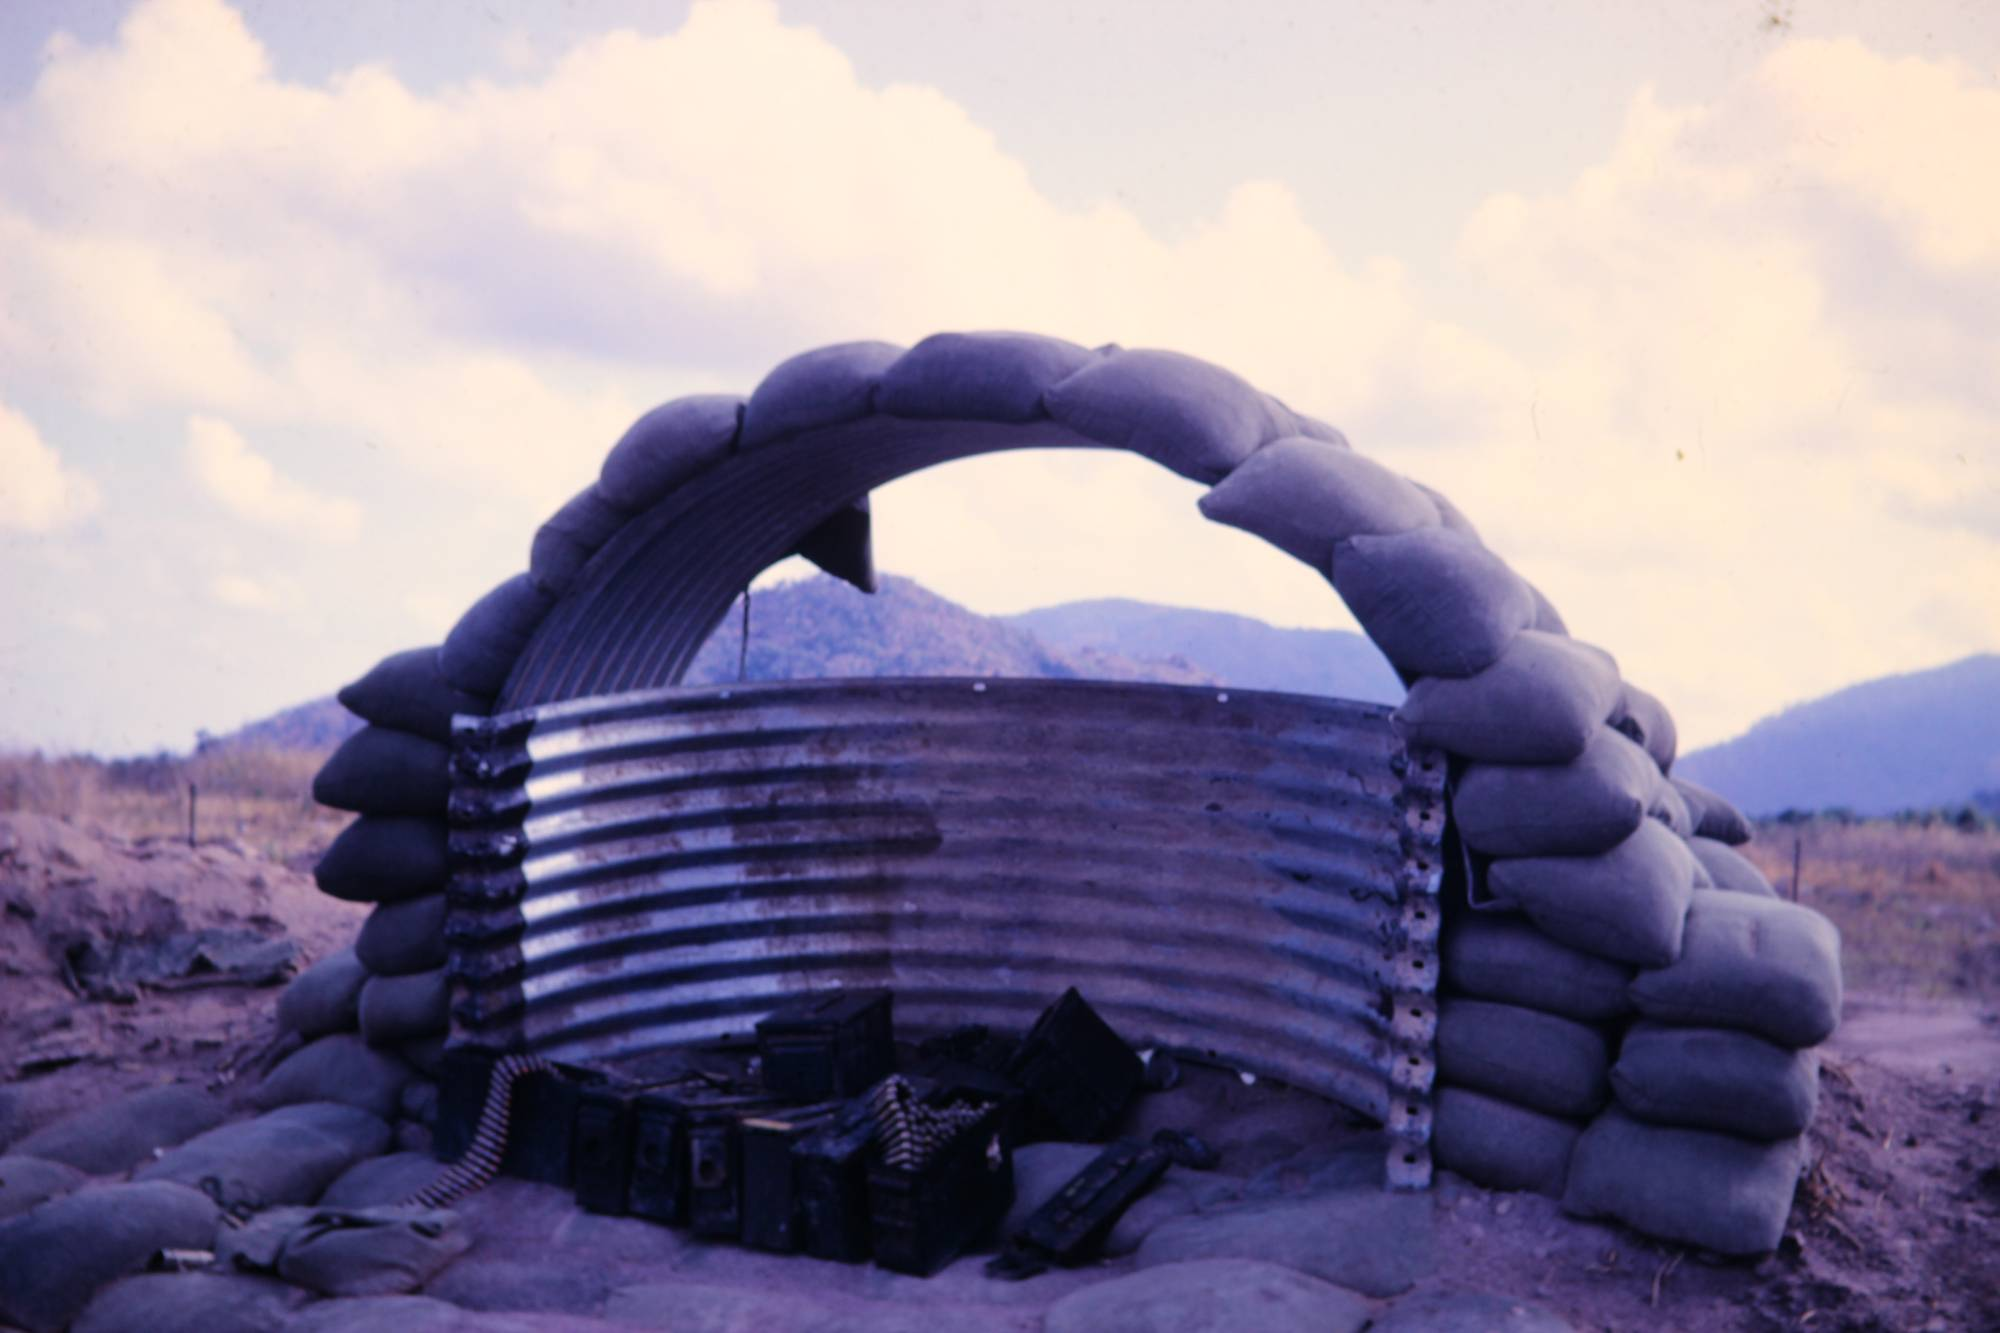 A guard station on top of a hill, made from corrugated metal and sandbags.